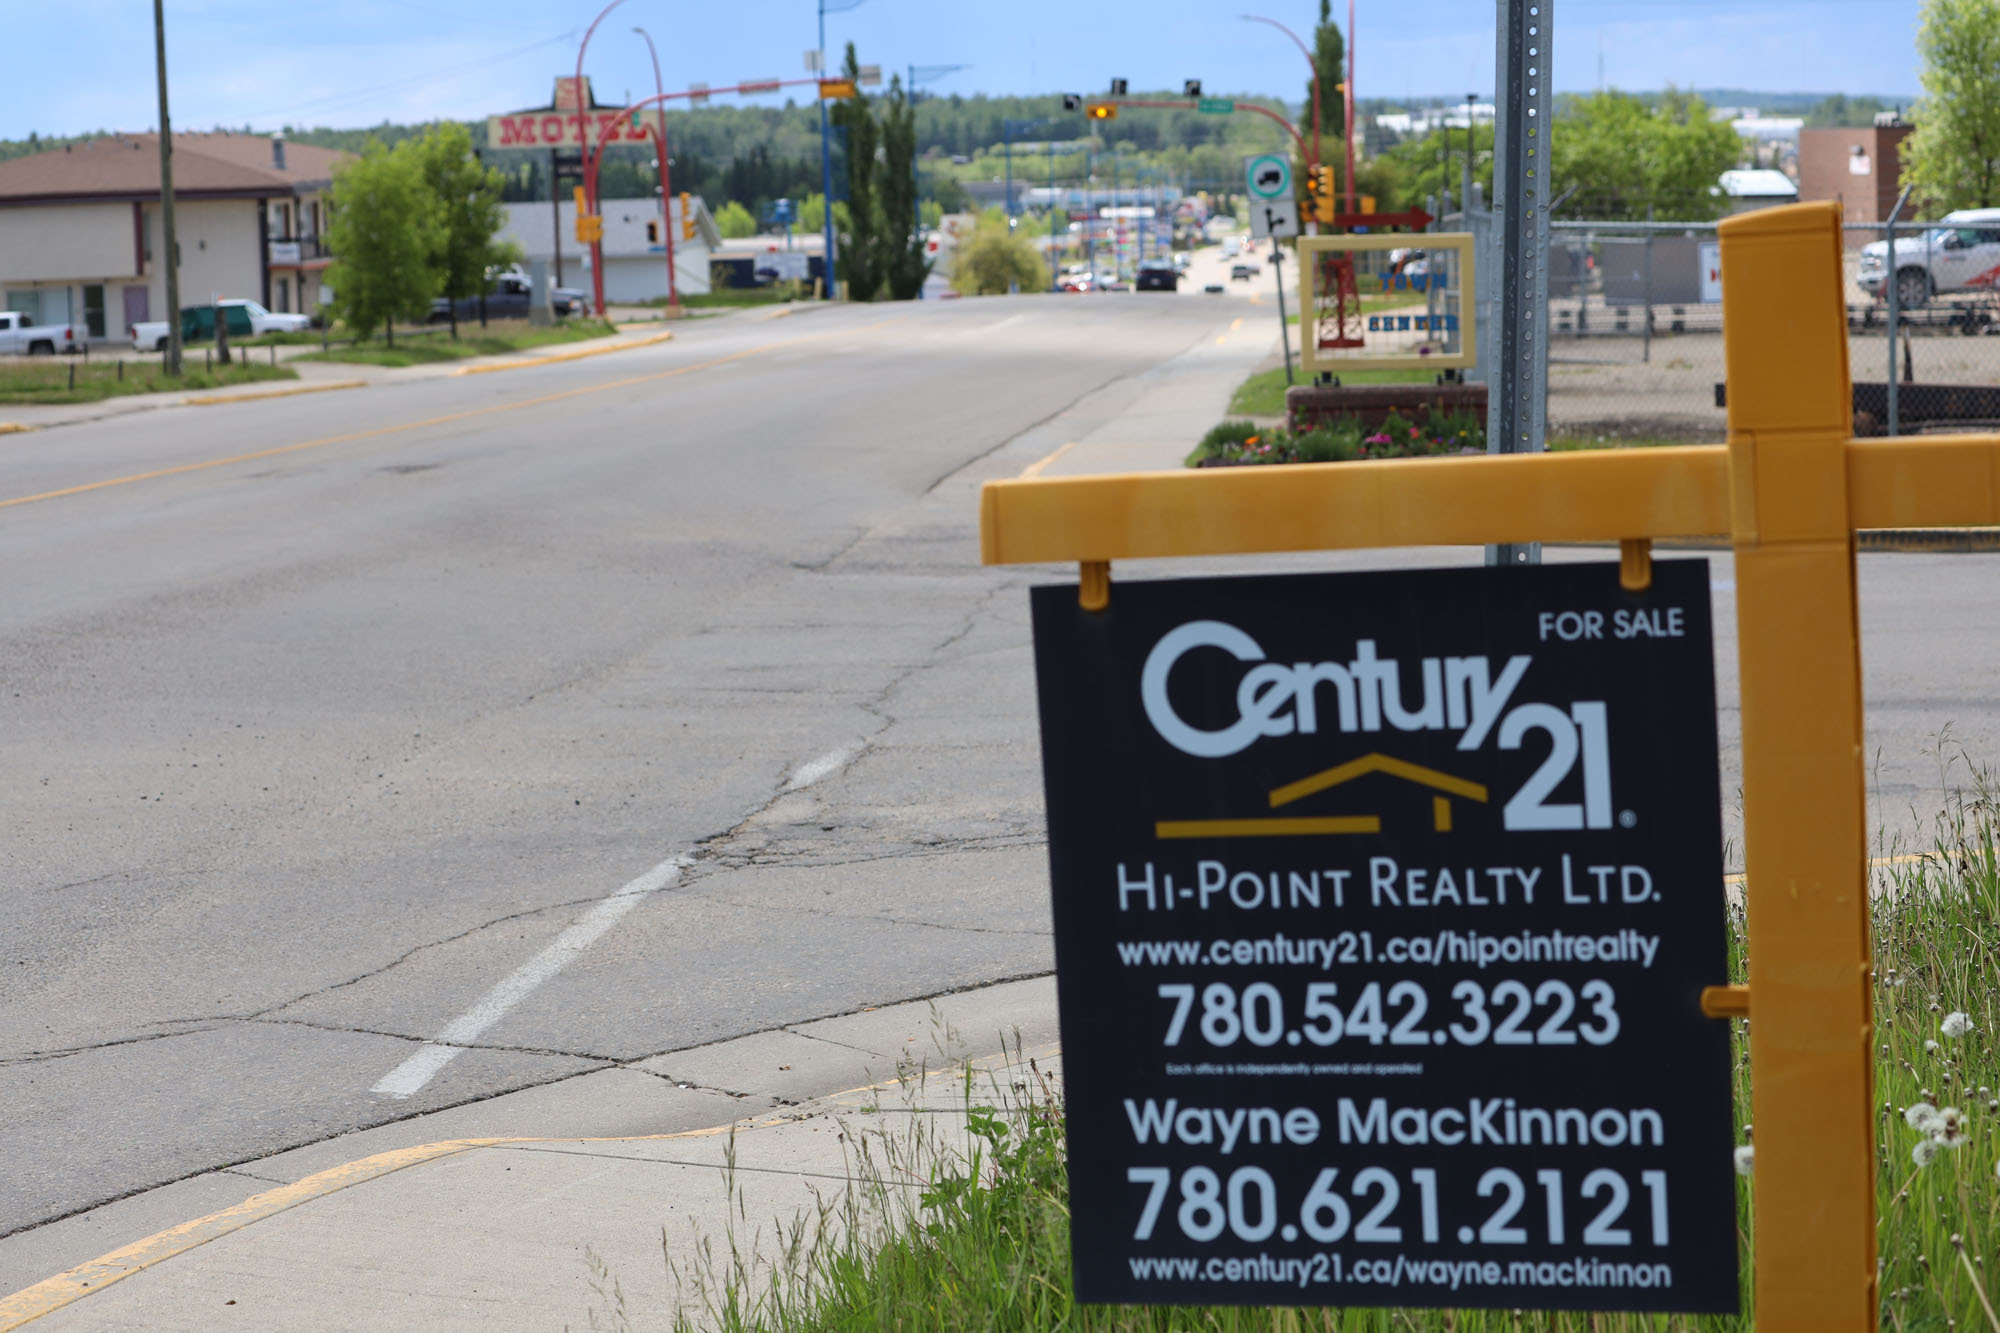 In the past two weeks, two businesses in Drayton Valley have closed. Other businesses and homes are up for sale as some people feel they have no other choice than to leave. (Kory Siegers/CBC)